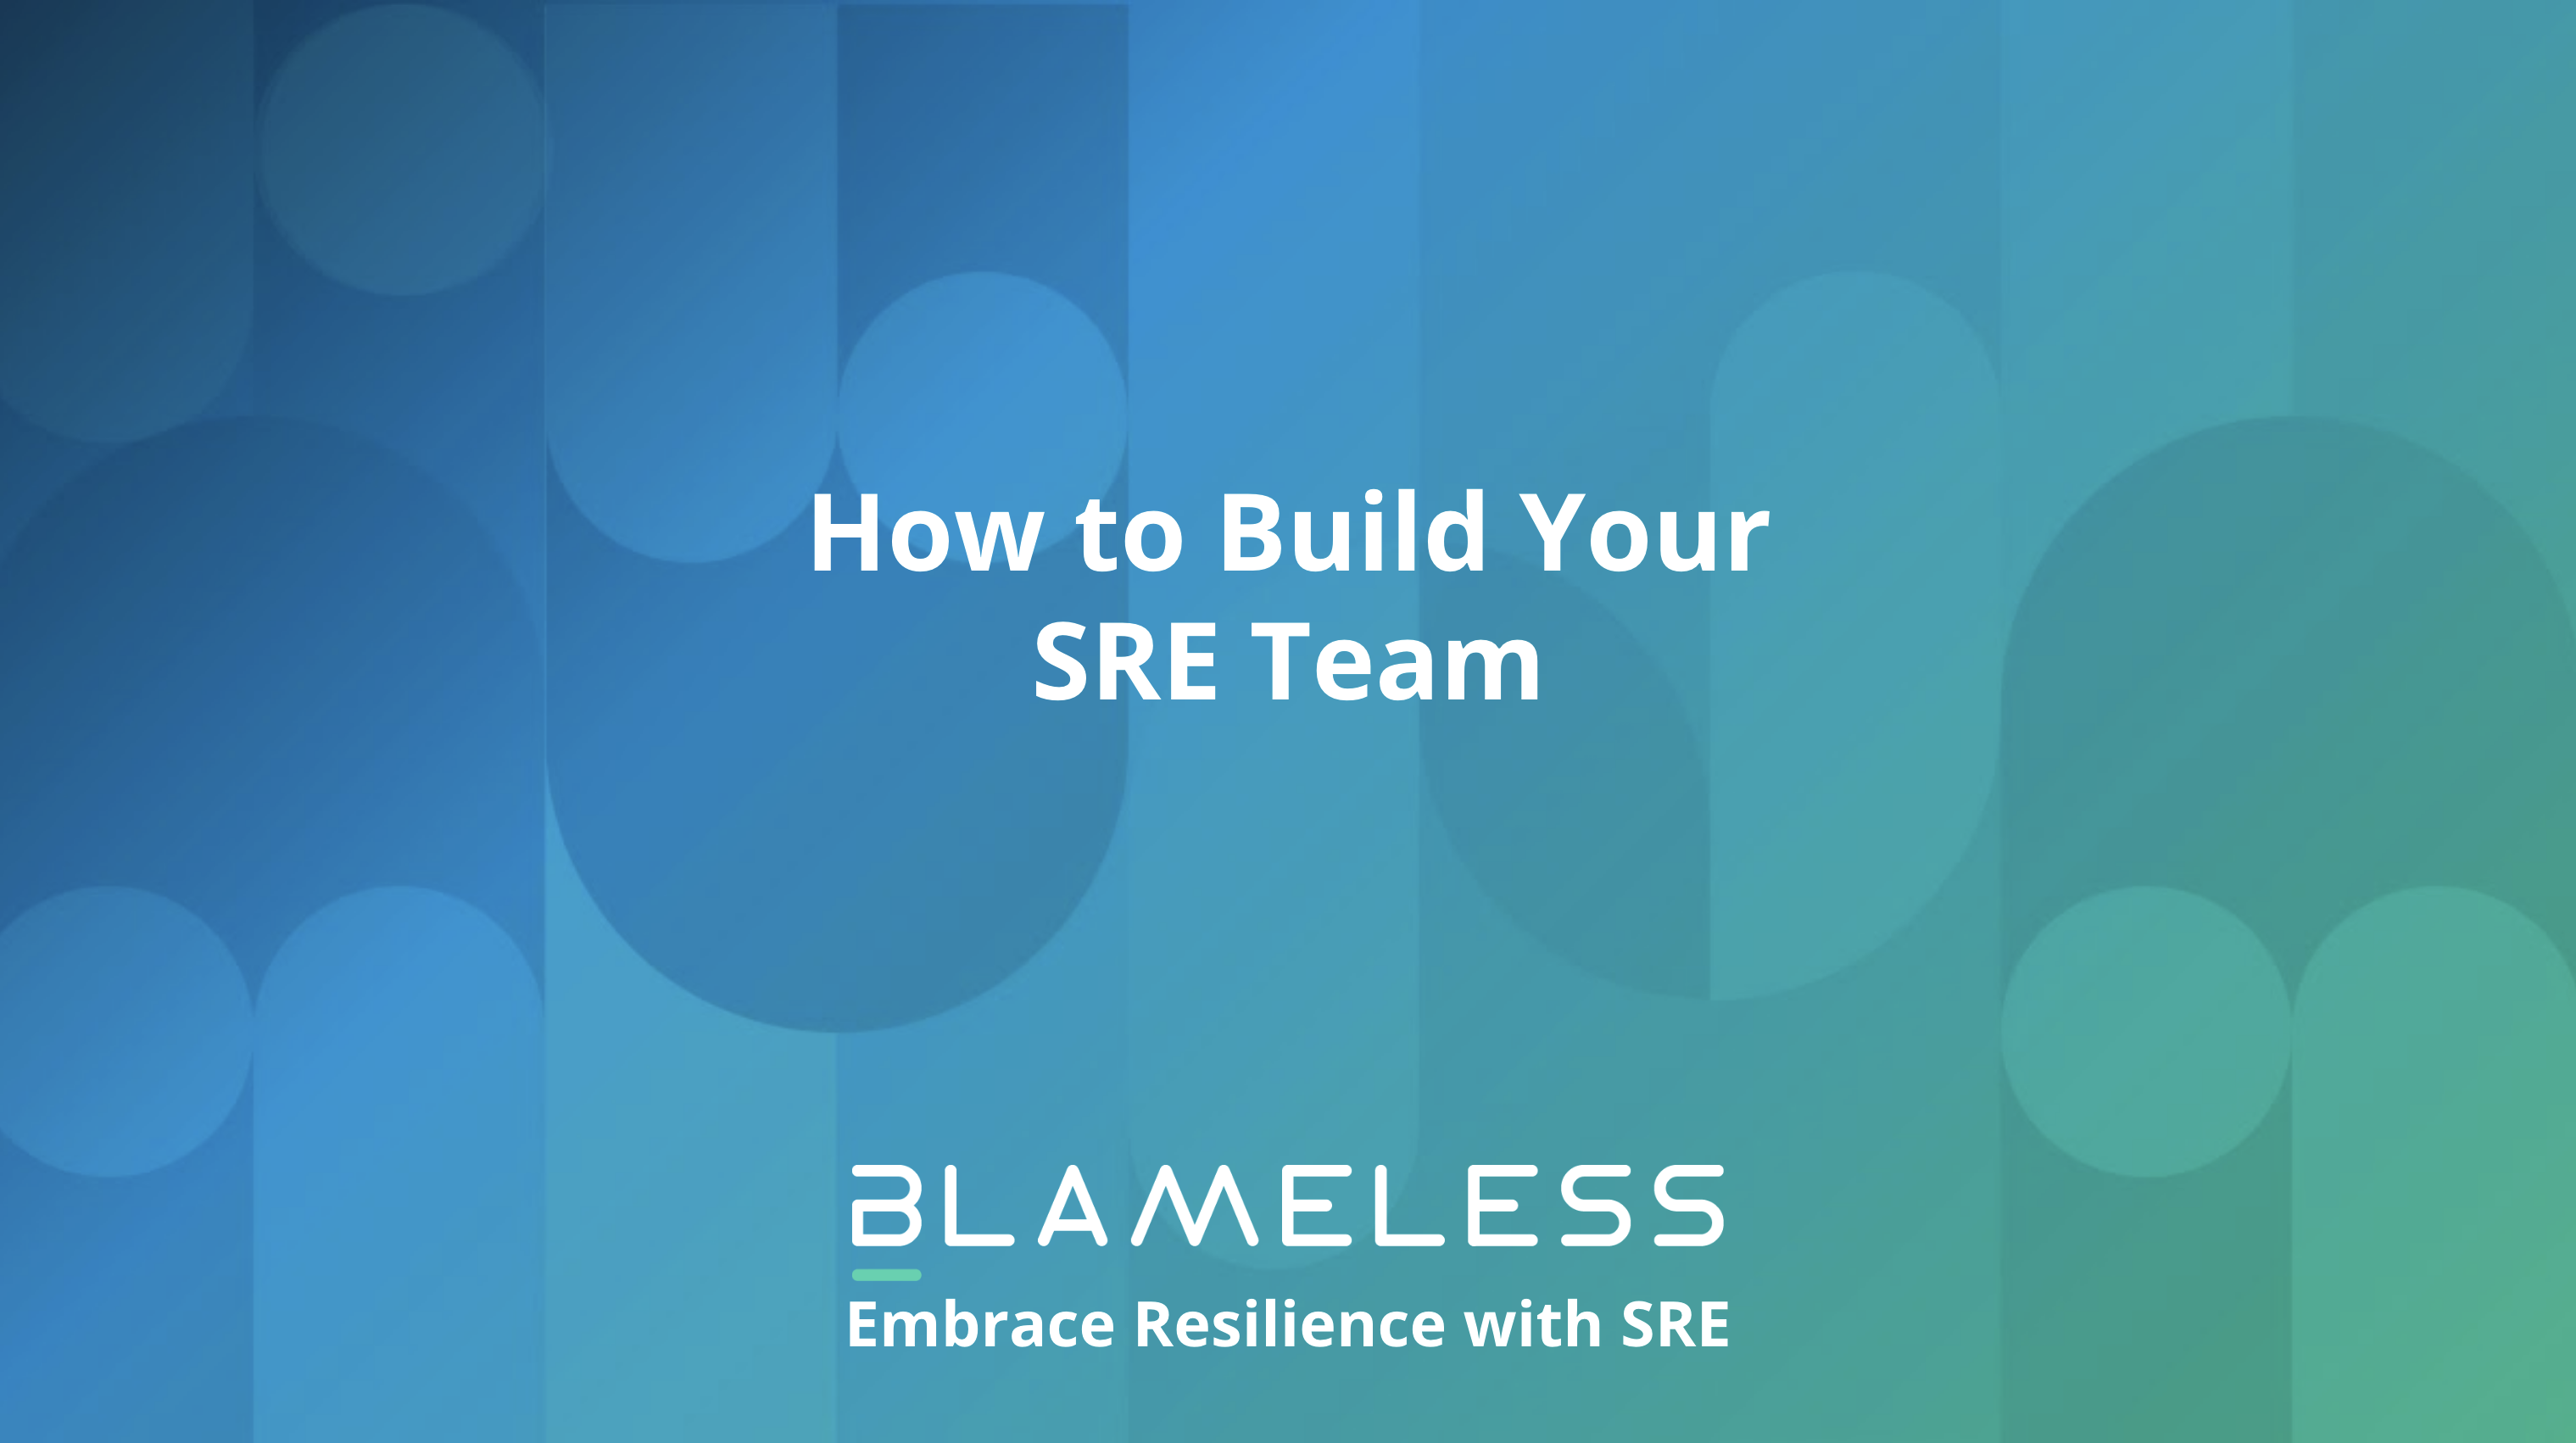 How to Build Your SRE Team